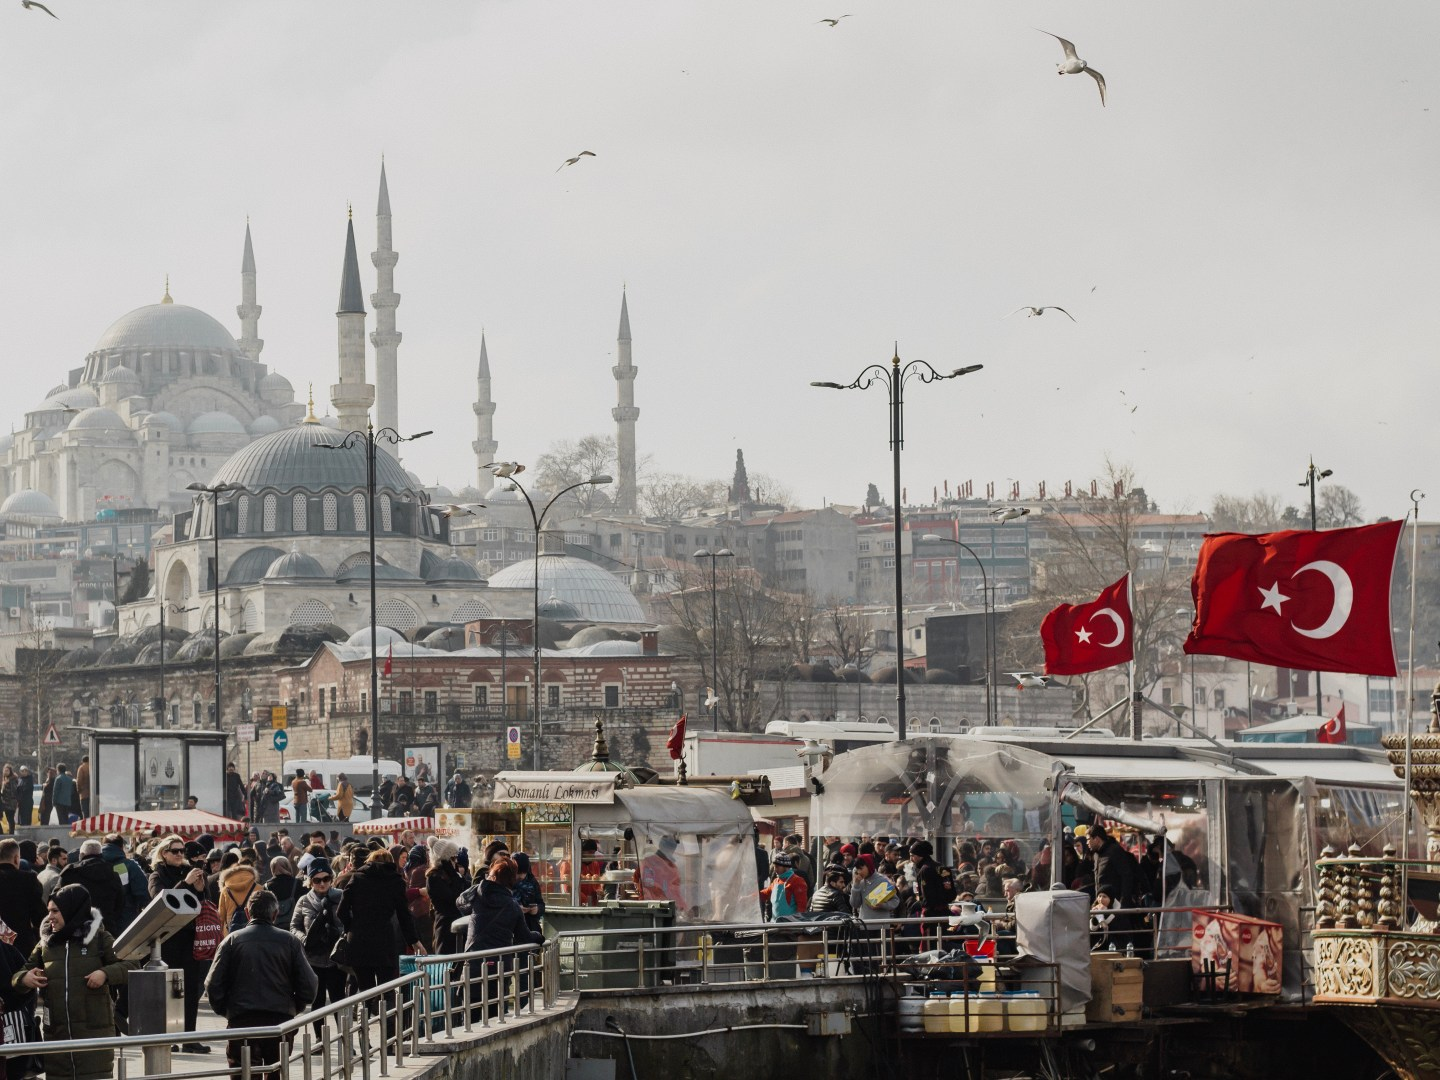 Illustrated by Sade - View of the city of Istanbul from the Galata Bridge